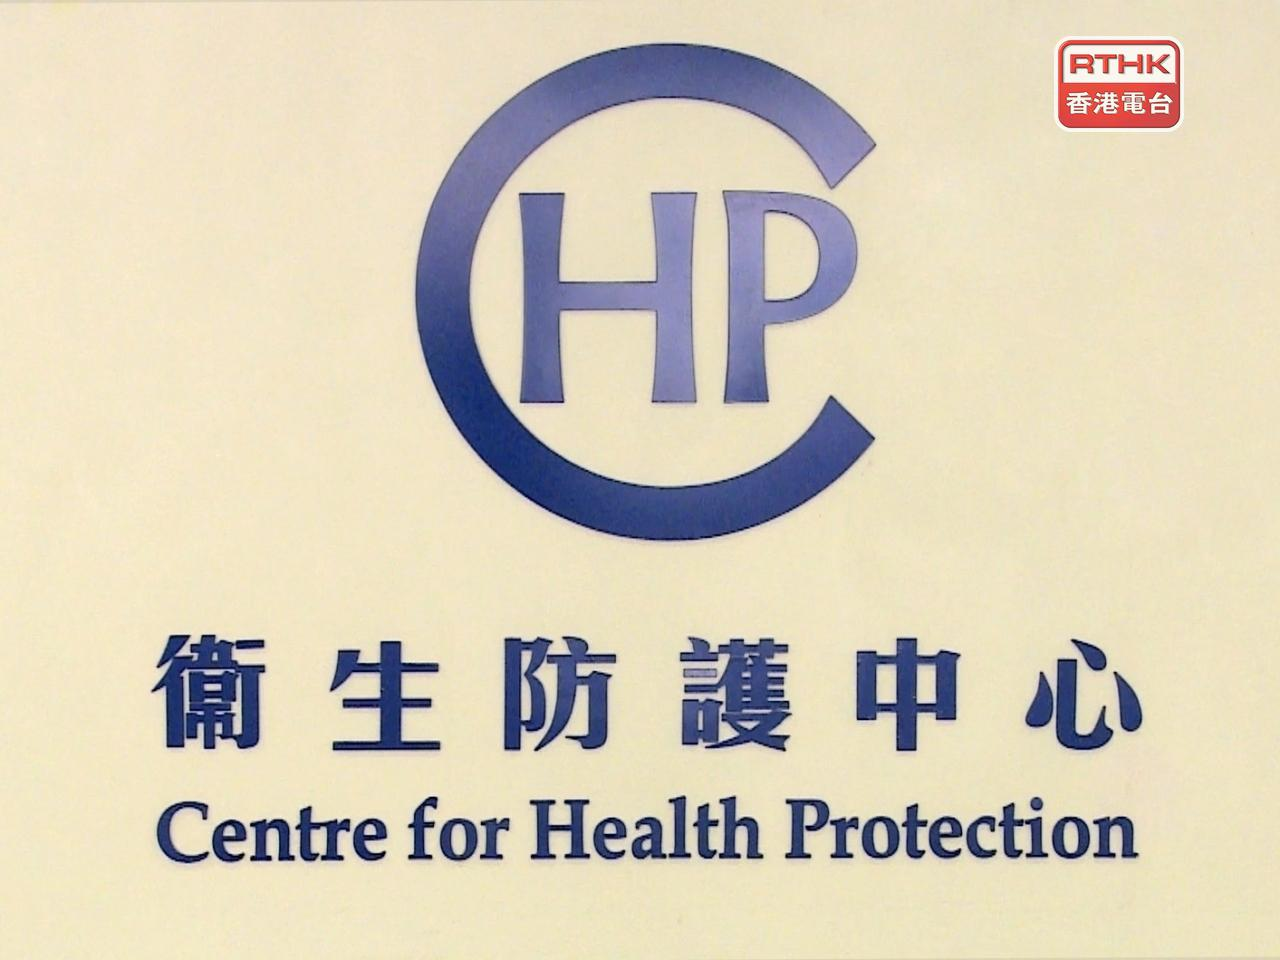 The Centre for Health Protection says the patient is likely a re-positive case. File photo: RTHK